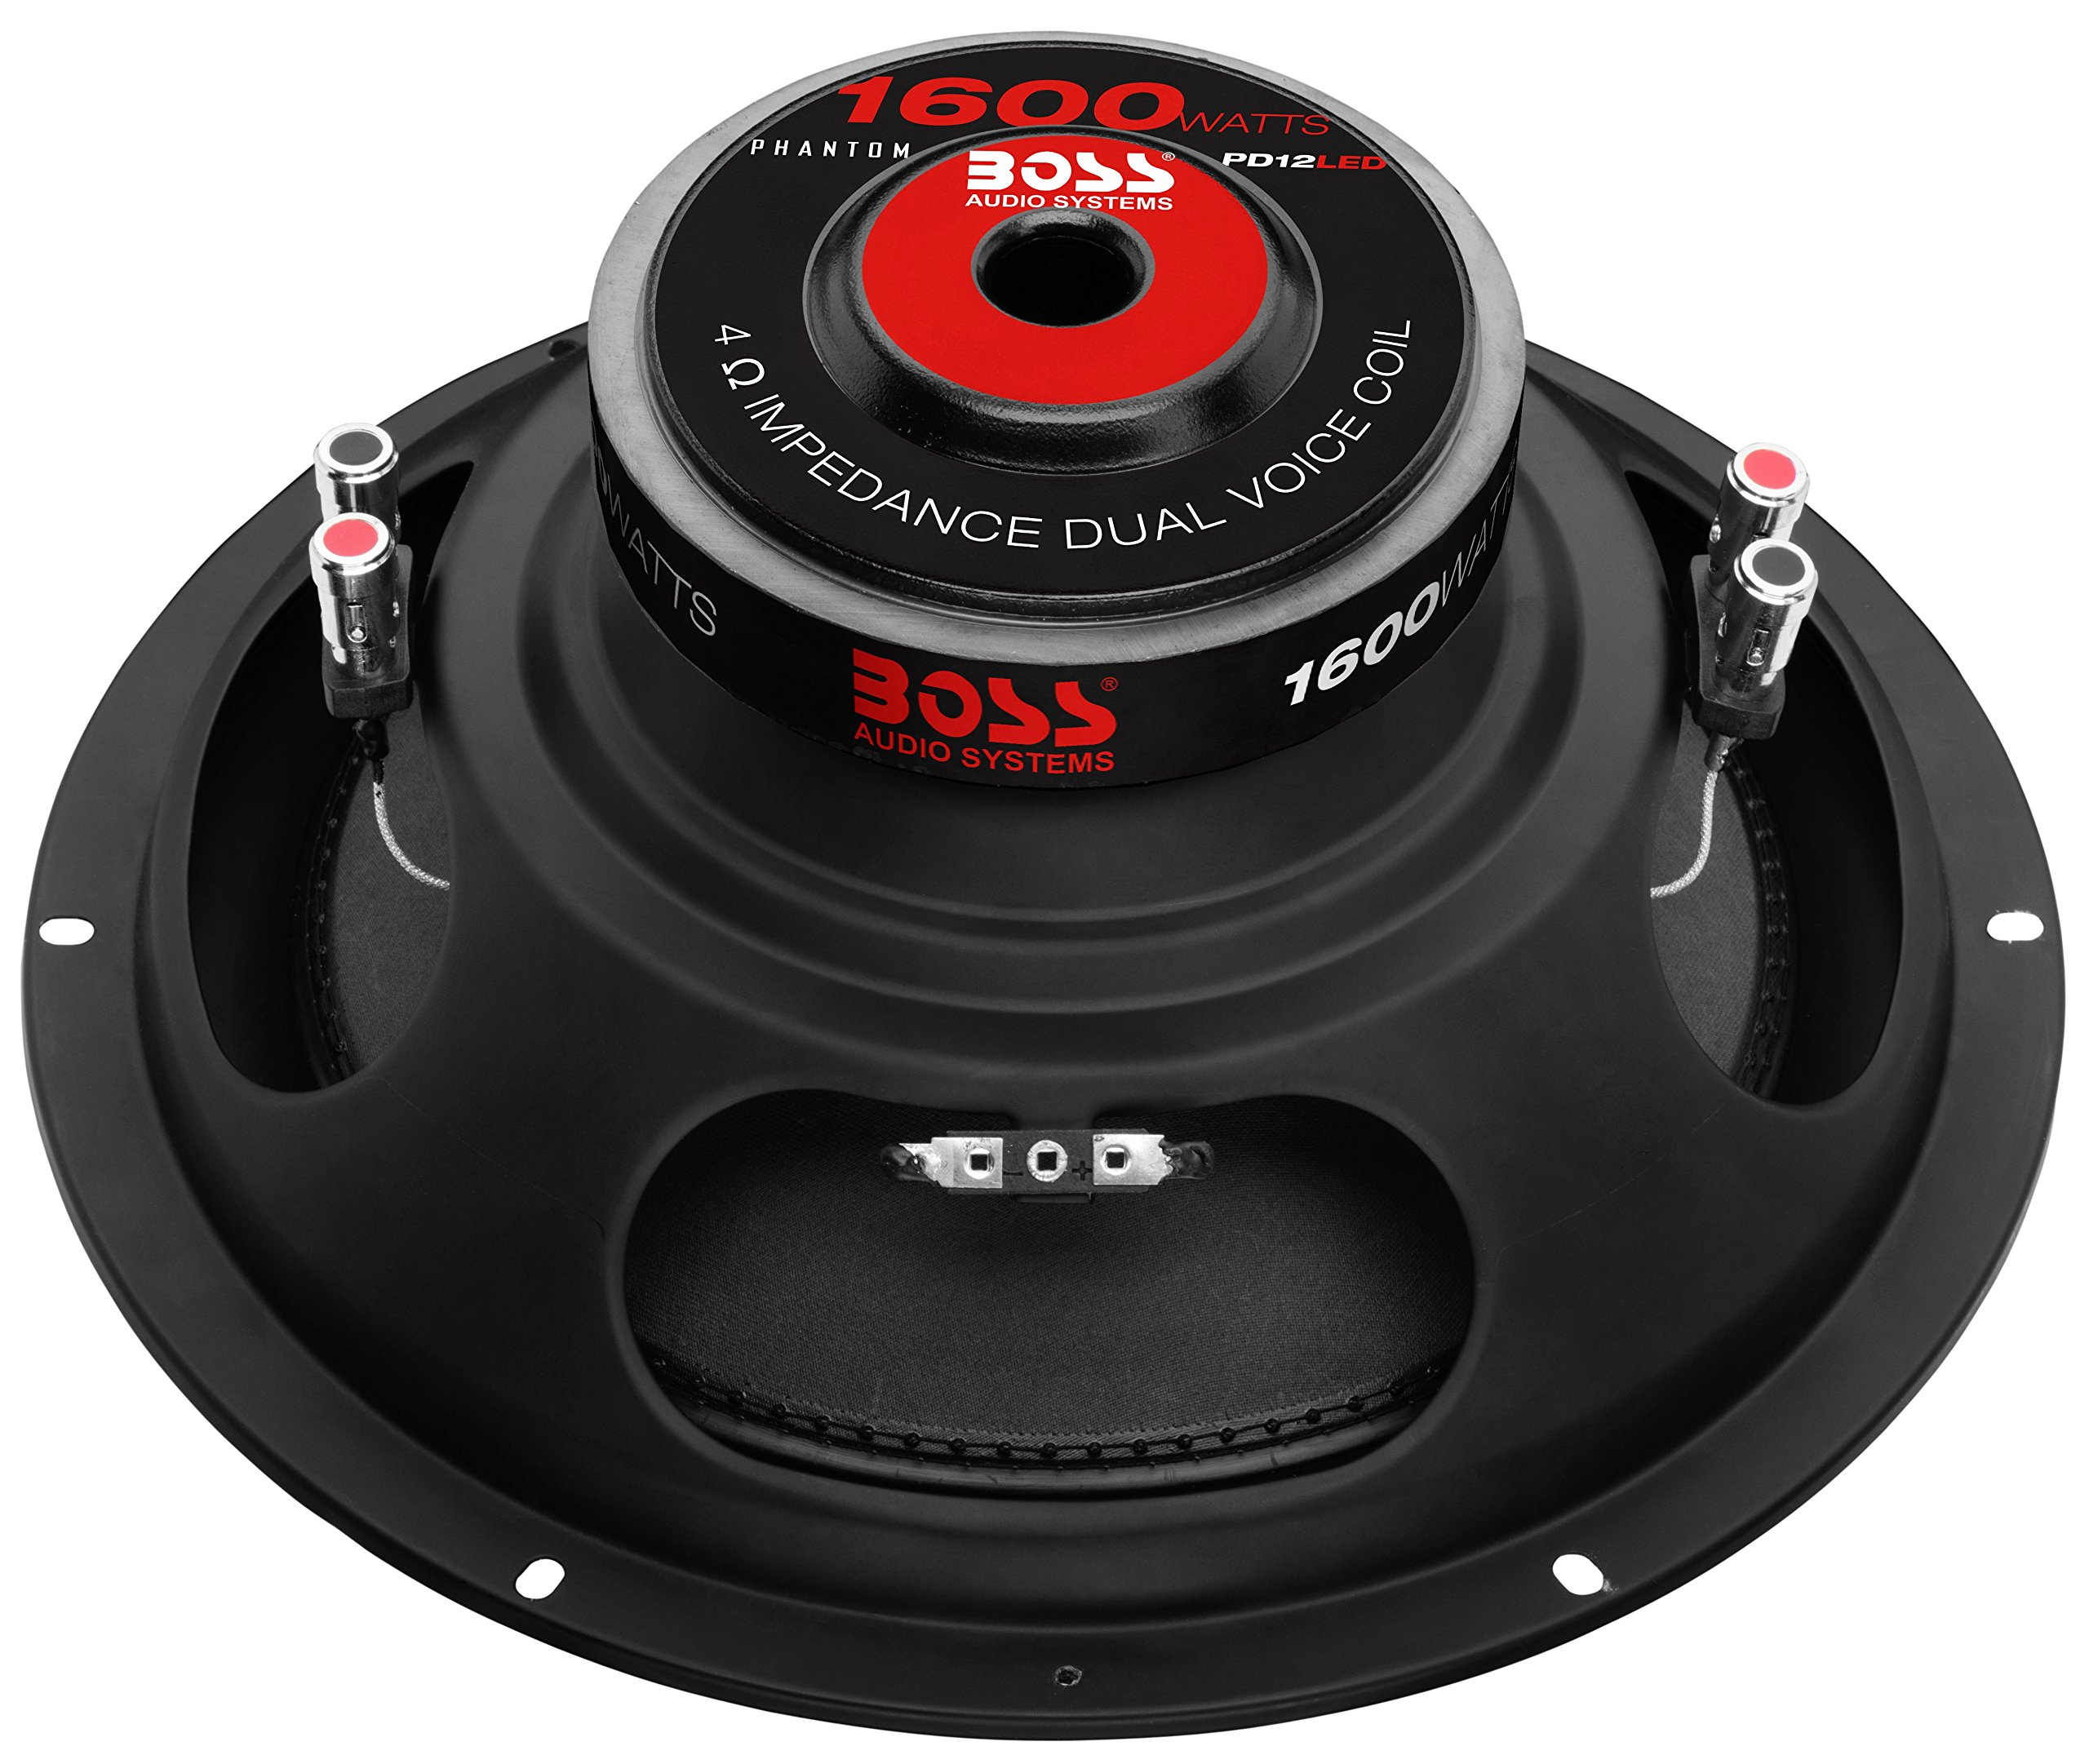 BOSS Audio PD12LED 1600 Watt, 12 Inch, Dual 4 Ohm Voice Coil Car Subwoofer by BOSS Audio Systems (Image #3)